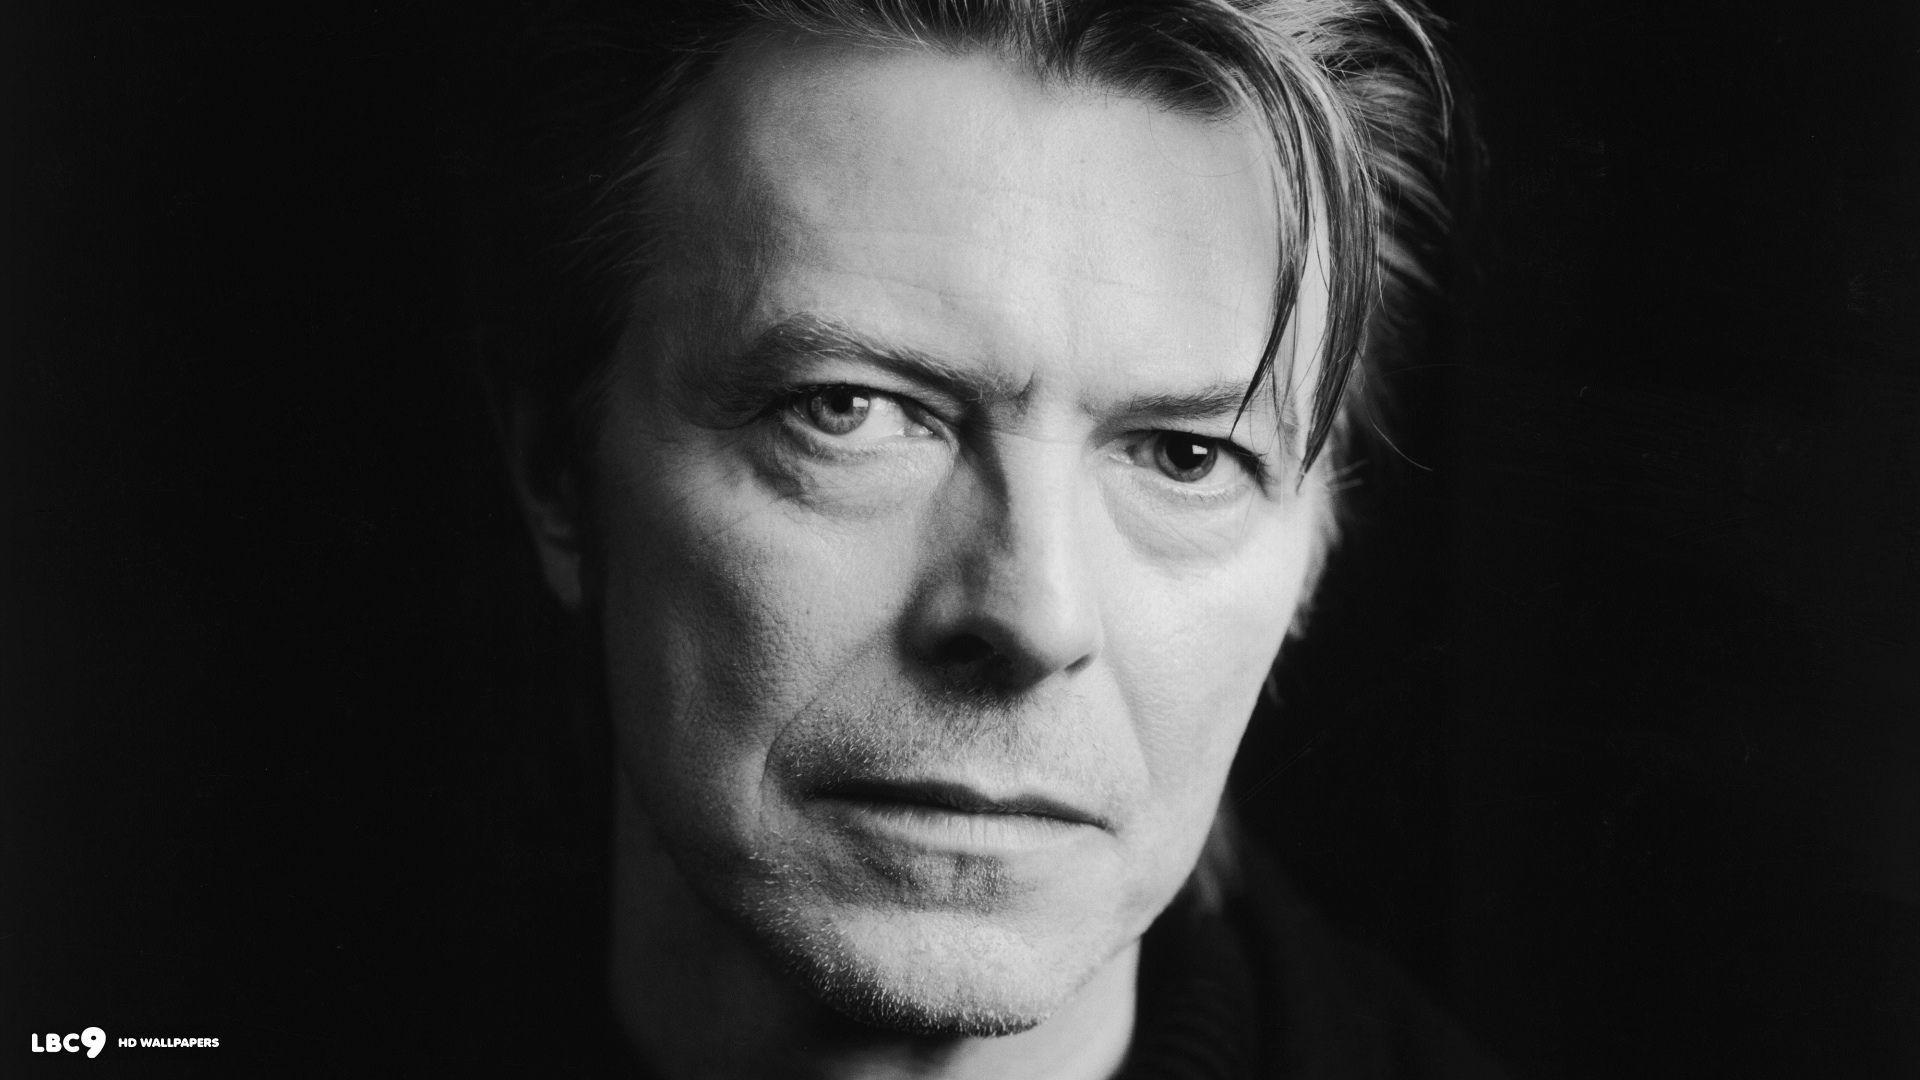 david bowie Wallpapers 1920x1080